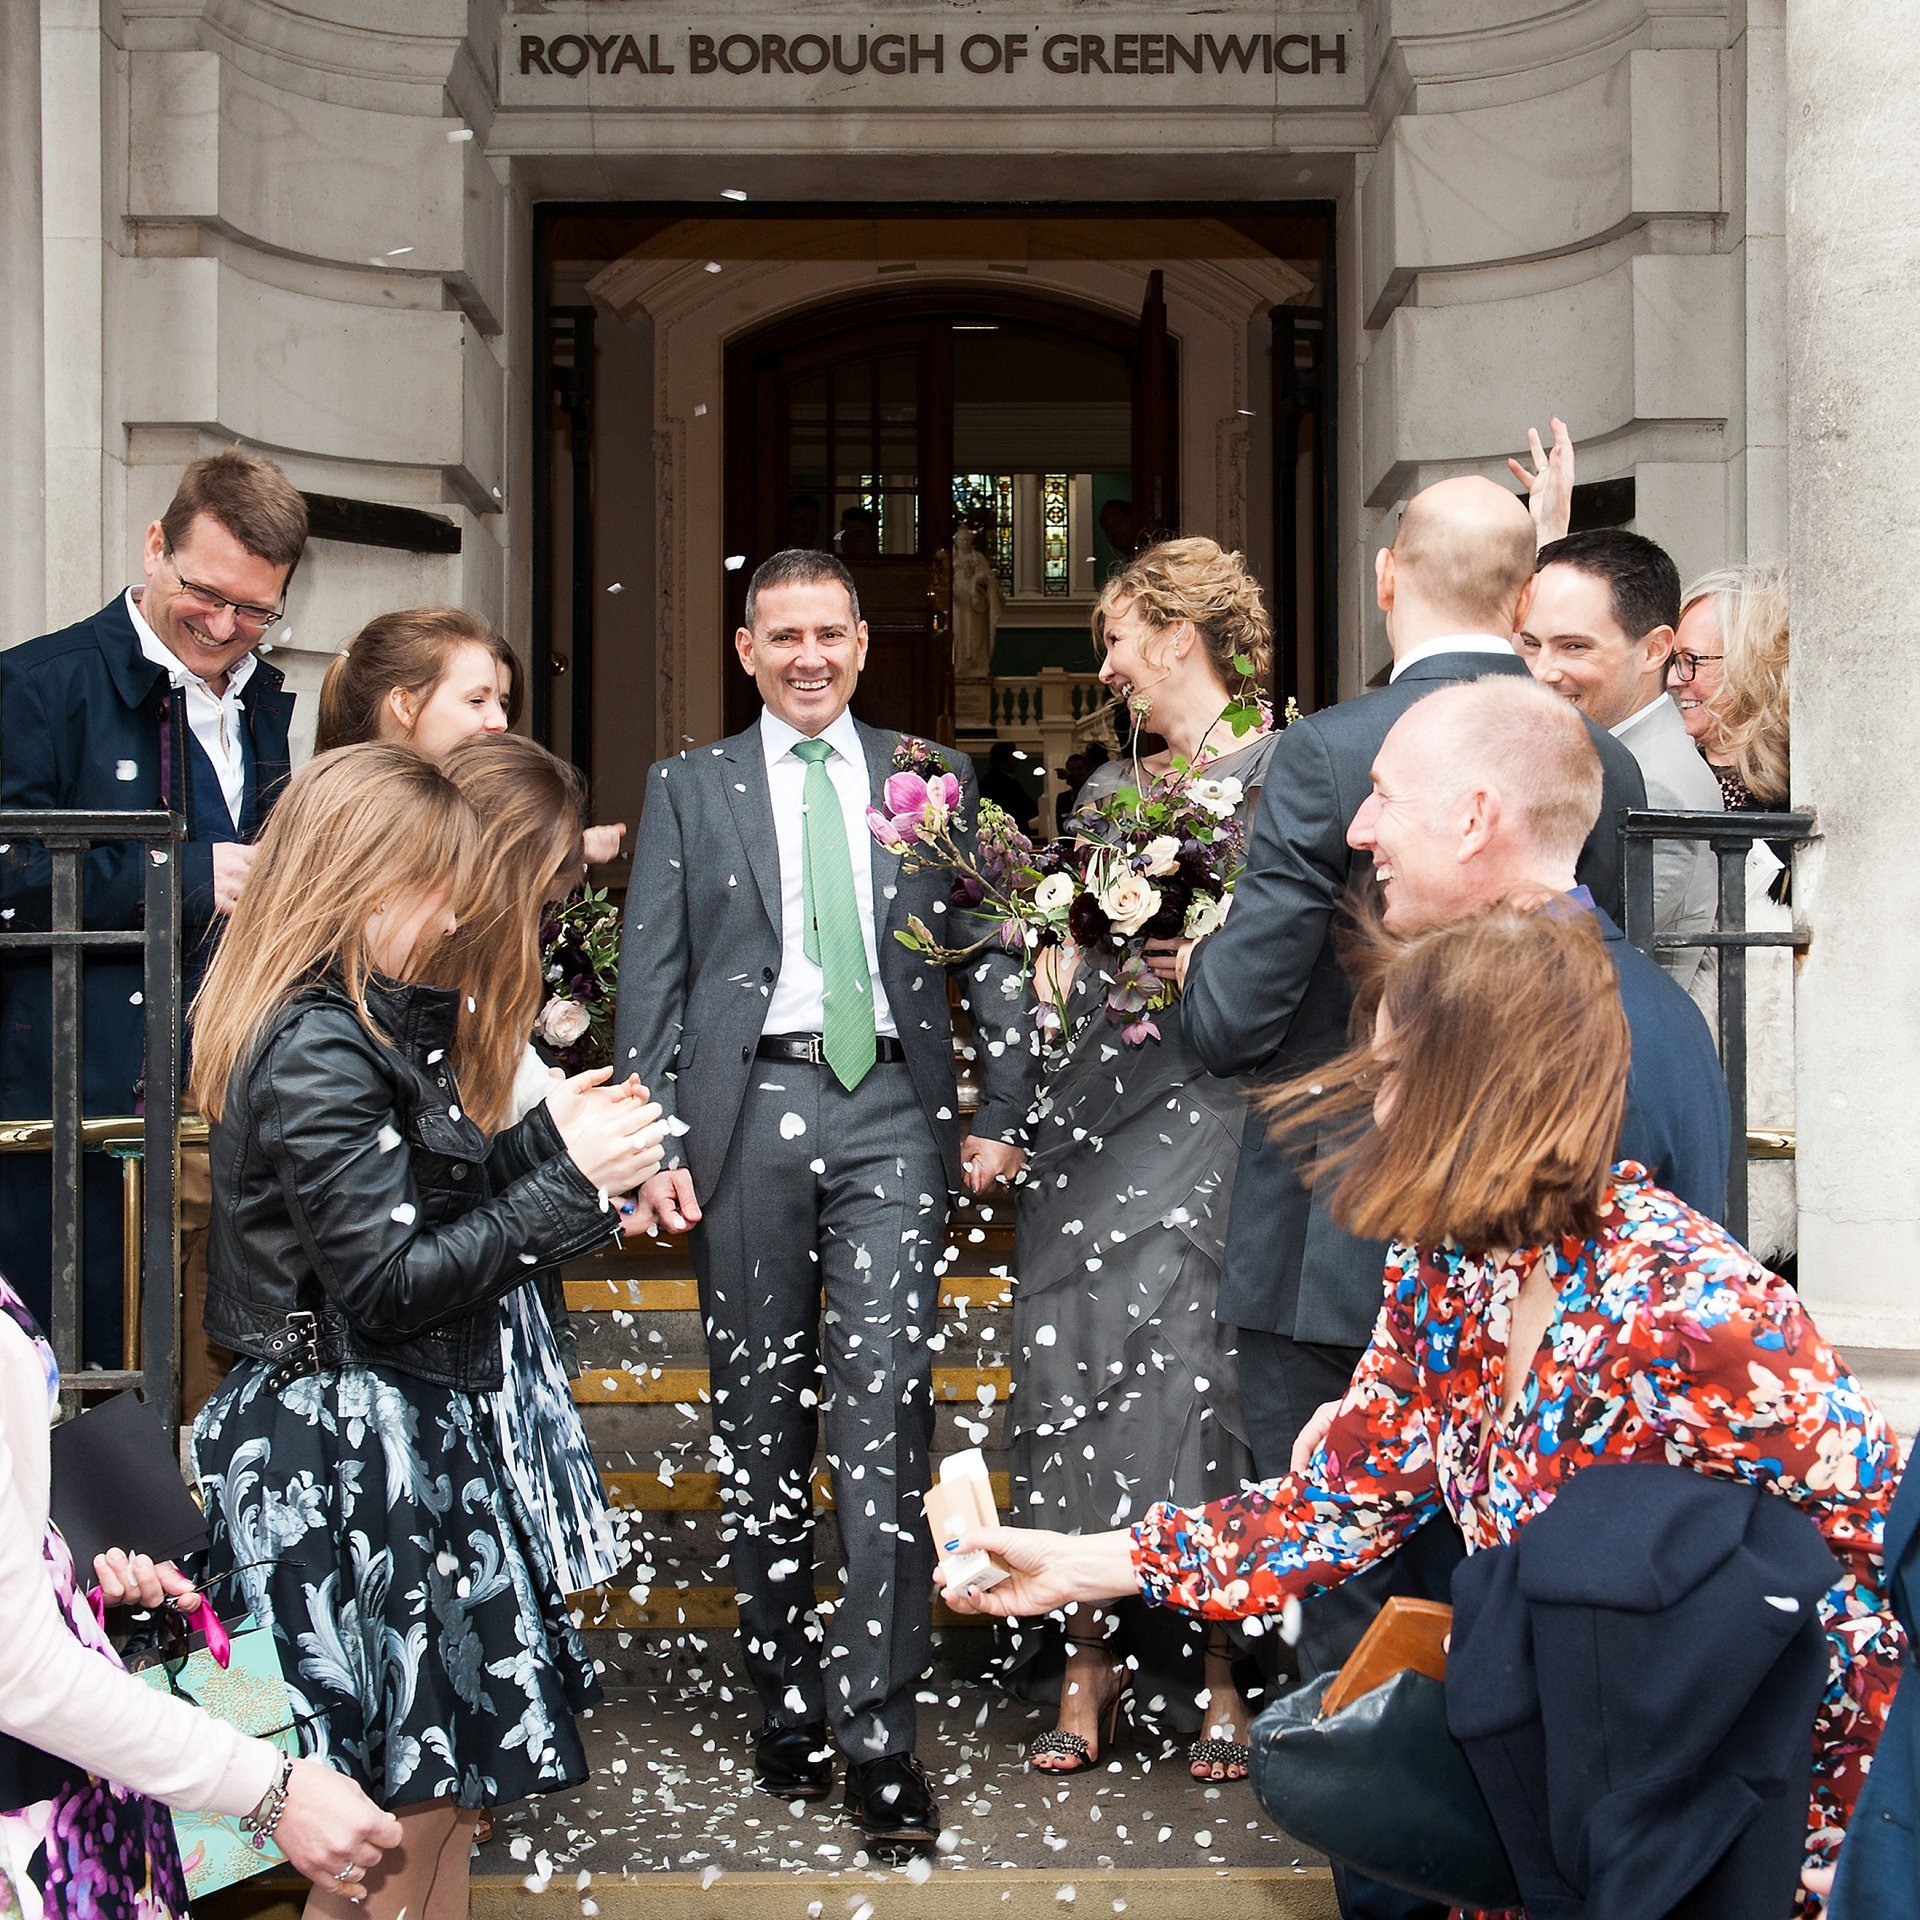 Greenwich Register Office wedding photographer Emma Duggan offers photography like this bride and groom leaving Woolwich Town Hall in a whirl of confetti.